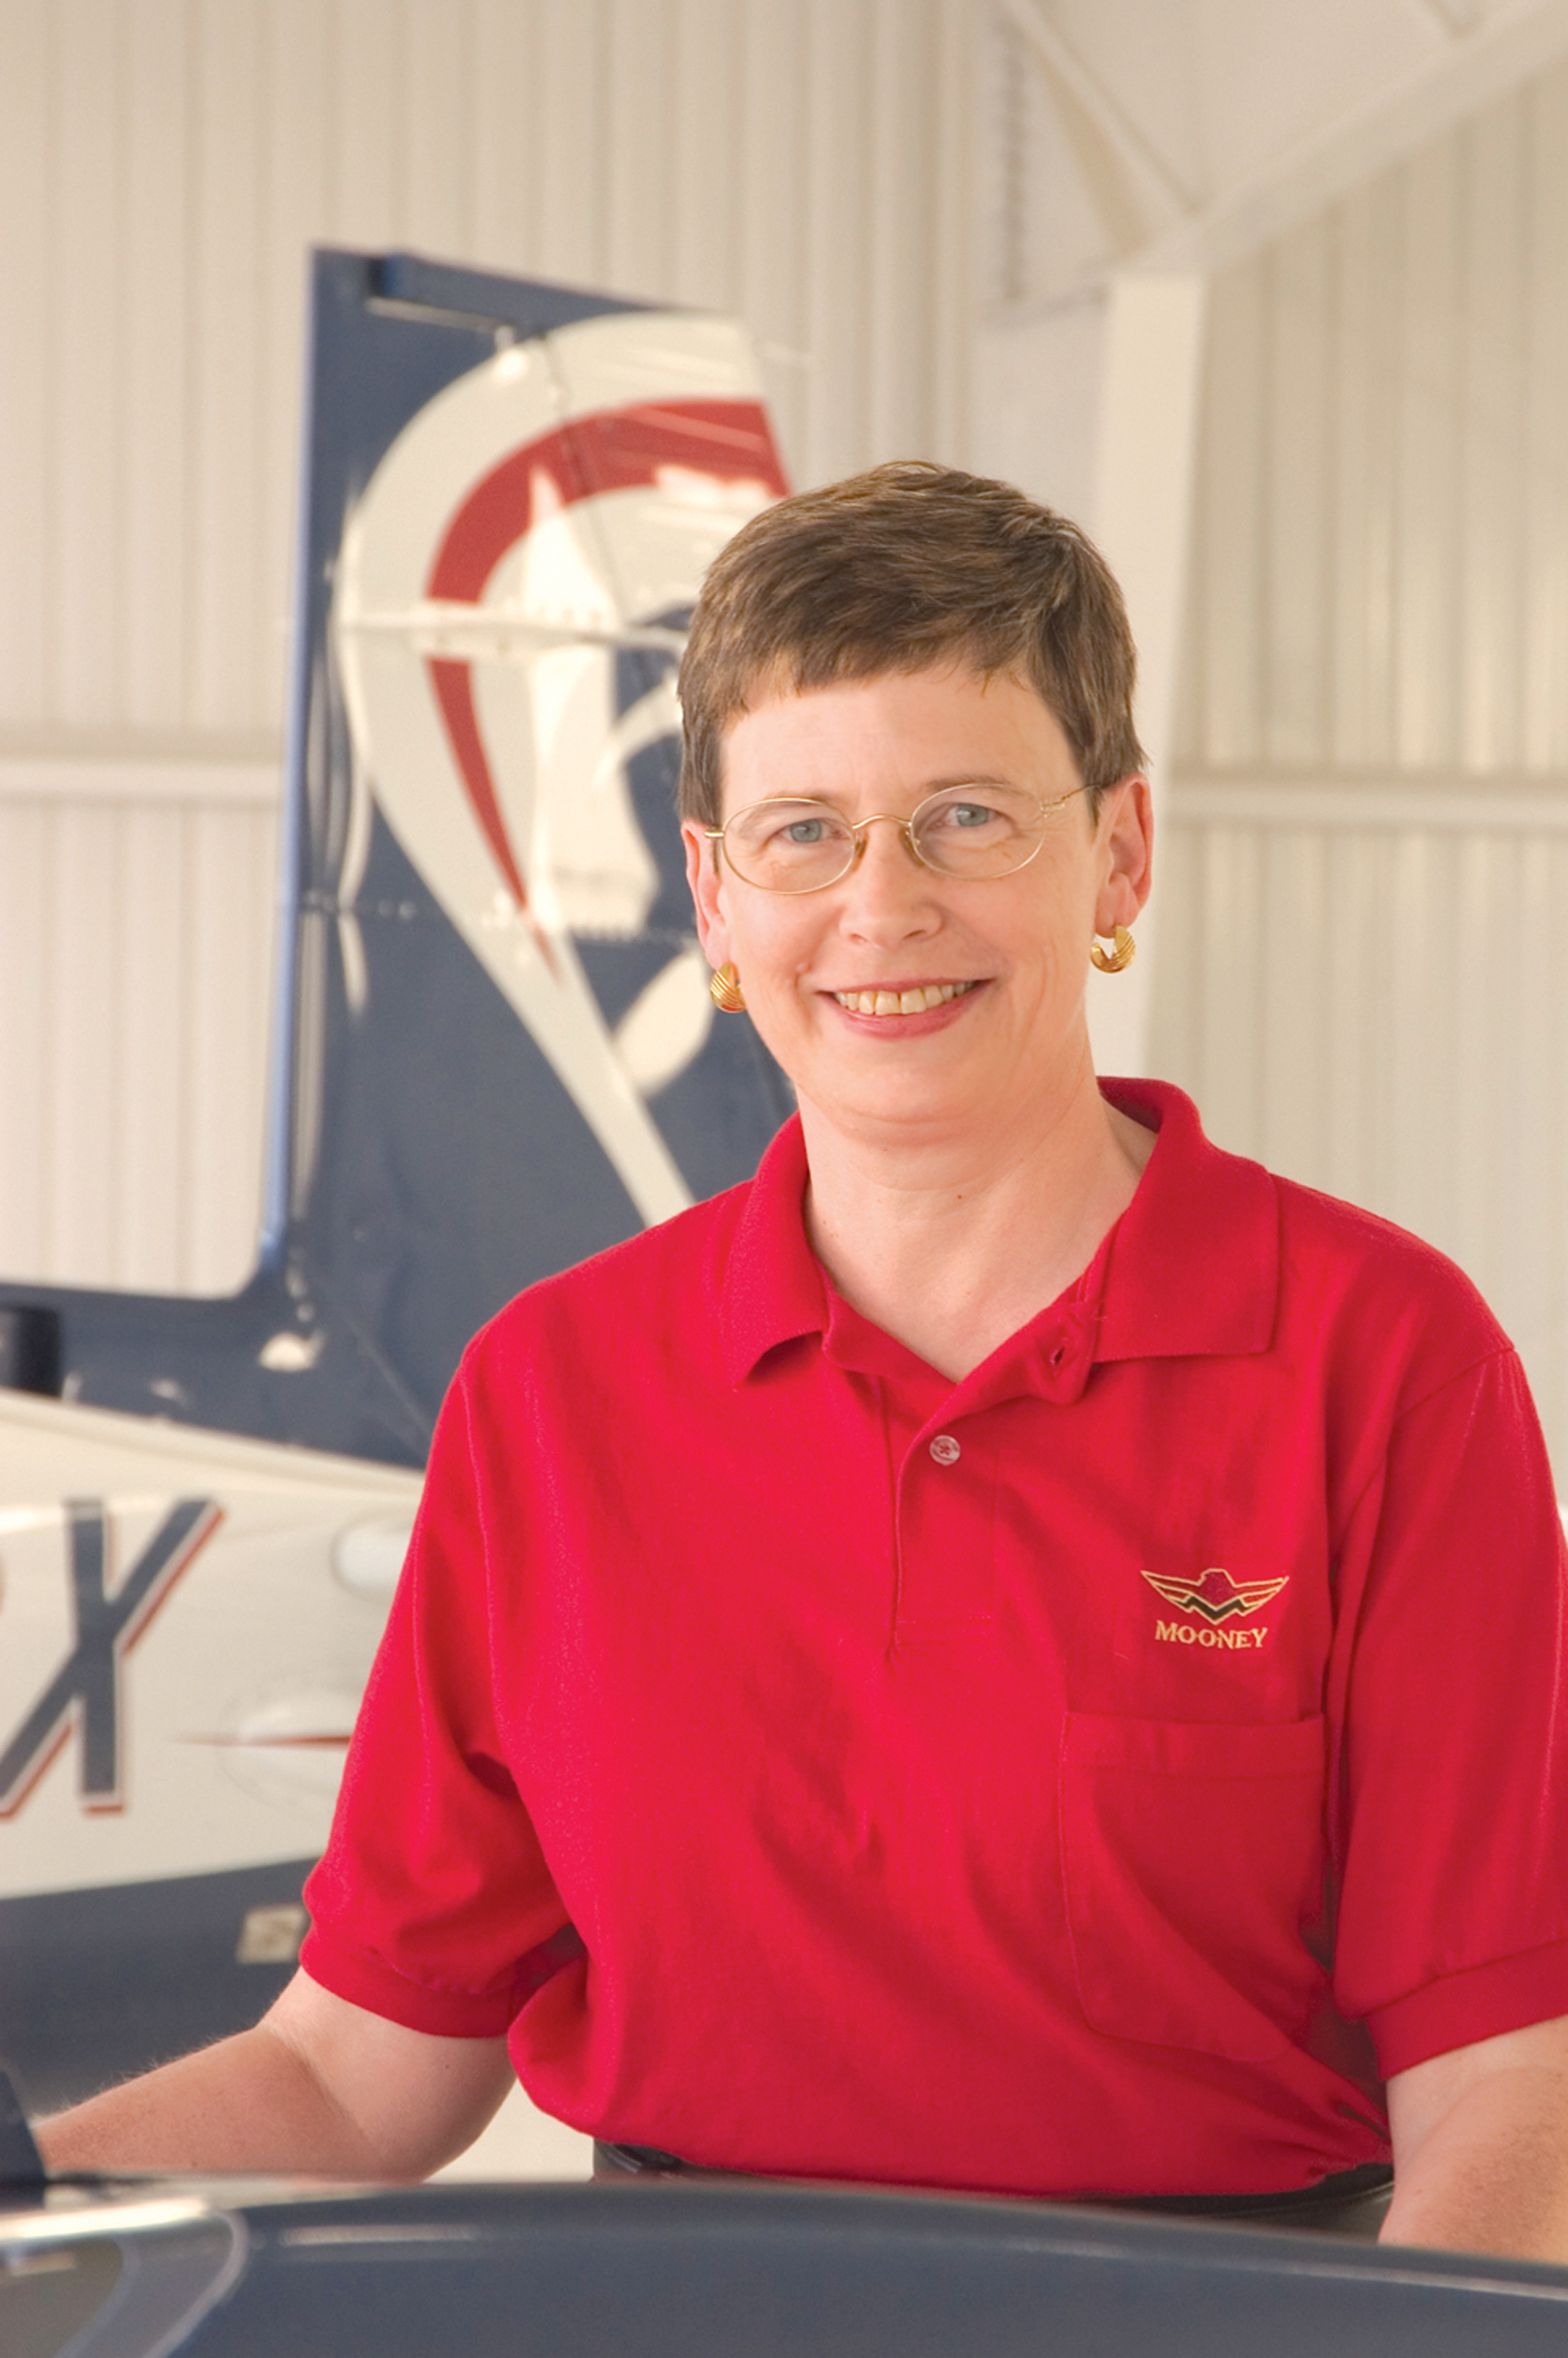 Mooney CEO Gretchen Jahn: A Welcome Novelty in Aviation